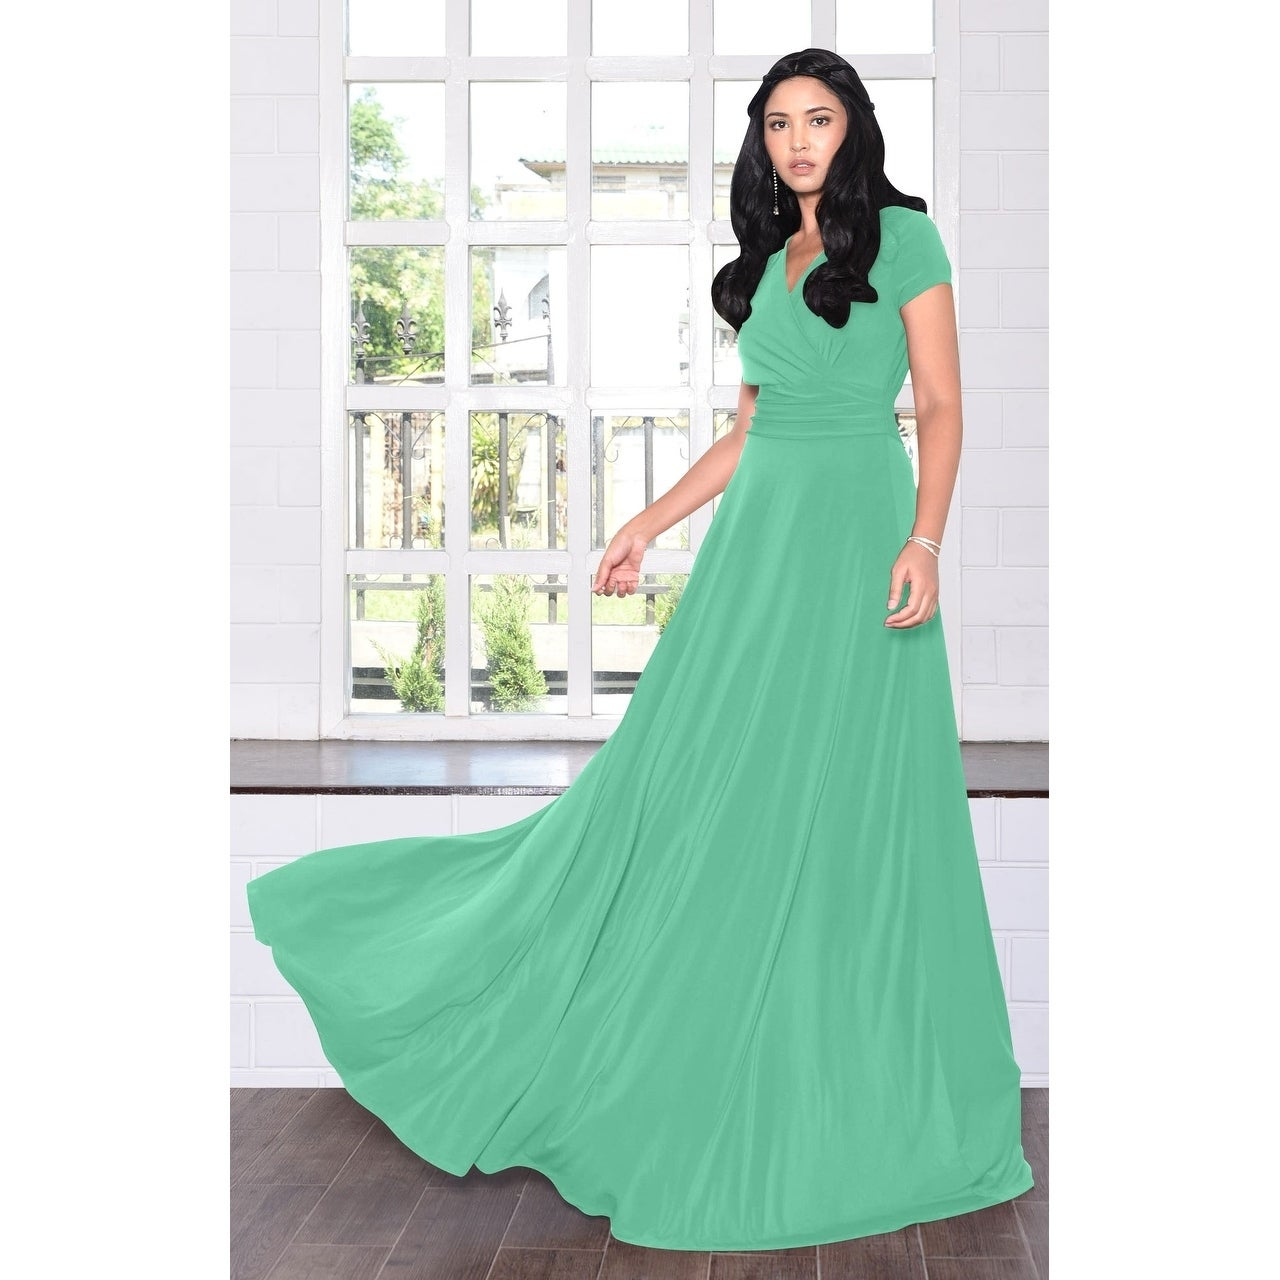 0cdc17daa59 Shop KOH KOH Women s Long Semi-Formal Short Cap Sleeve Maxi Dress Gown -  Free Shipping Today - Overstock - 10835719